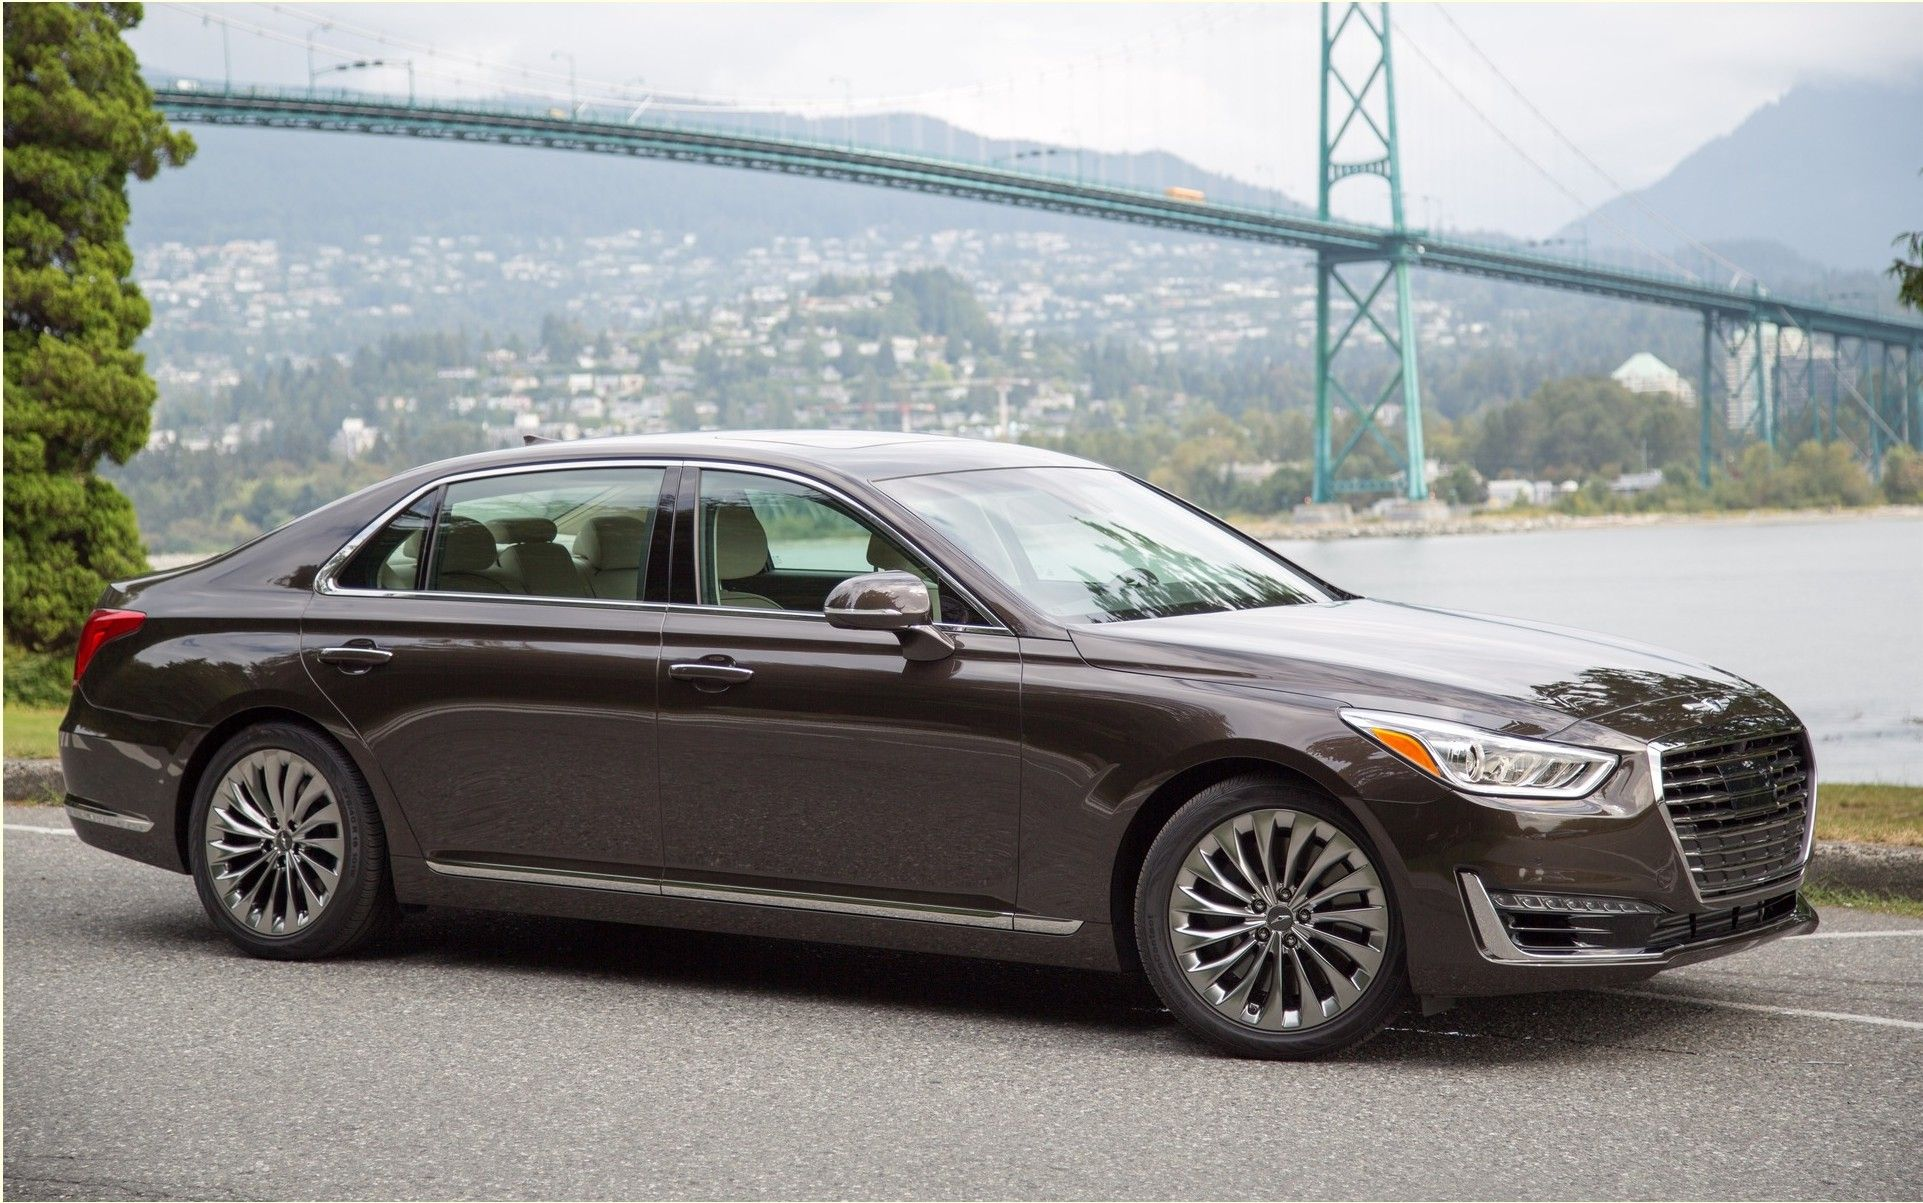 Today Is The Manufacturer Hyundai Officially Launches Its New Genesis Luxury Brand Ends Time Or One Found The Genesis Sed Hyundai Genesis Luxury Sedan Hyundai